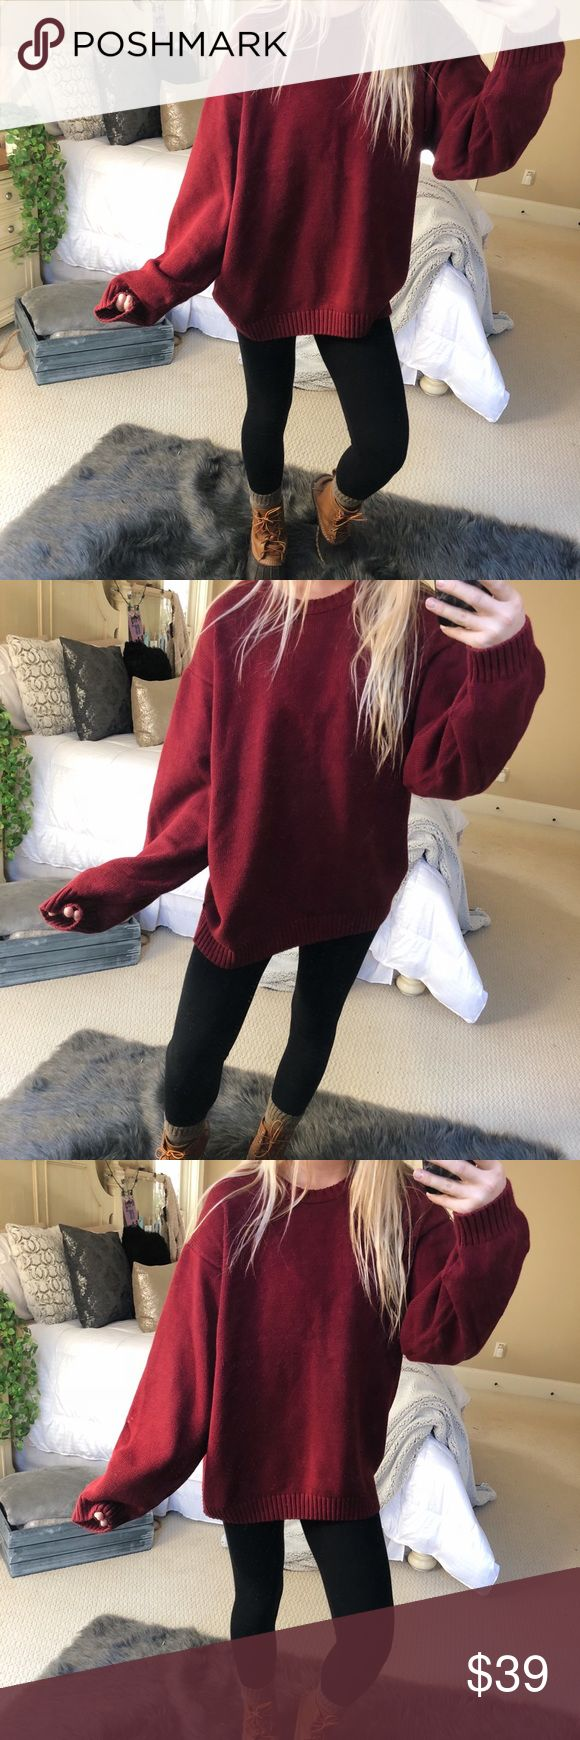 chunky burgundy knit super cozy and gorgeous chunky burgundy knit sweater! fits a size M/L 🌲🍂✨ — * all offers 100% welcomed + encouraged * bundle for a private discount of at least 20% off  * orders guaranteed to ship within 1-2 days unless stated otherwise * ask me any questions if you ever have any! xo Sweaters